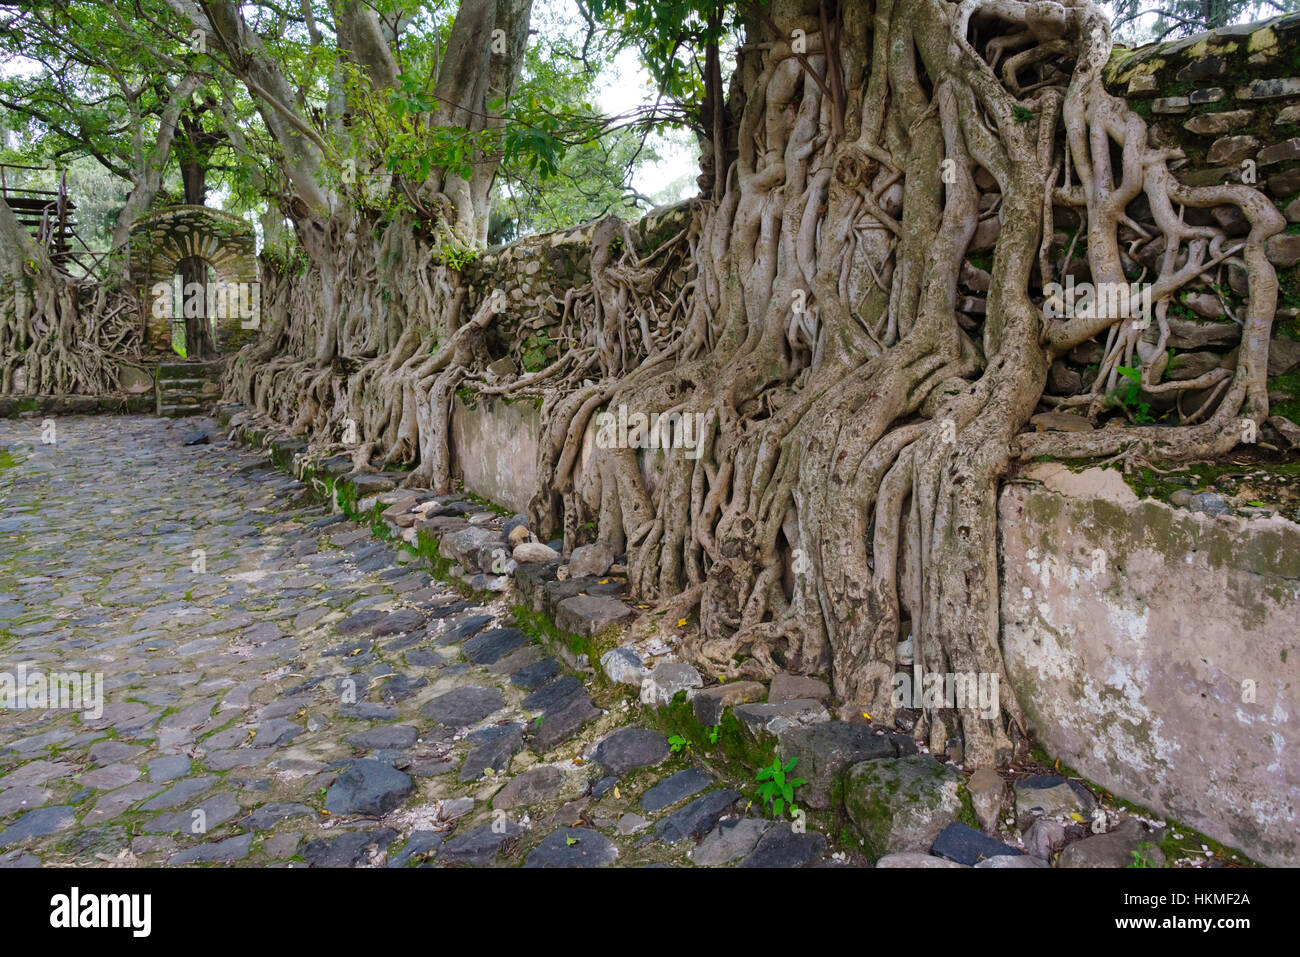 Banyan tree root taking over the ruins in Fasil Ghebbi (founded by Emperor Fasilides), UNESCO World Heritage site, - Stock Image